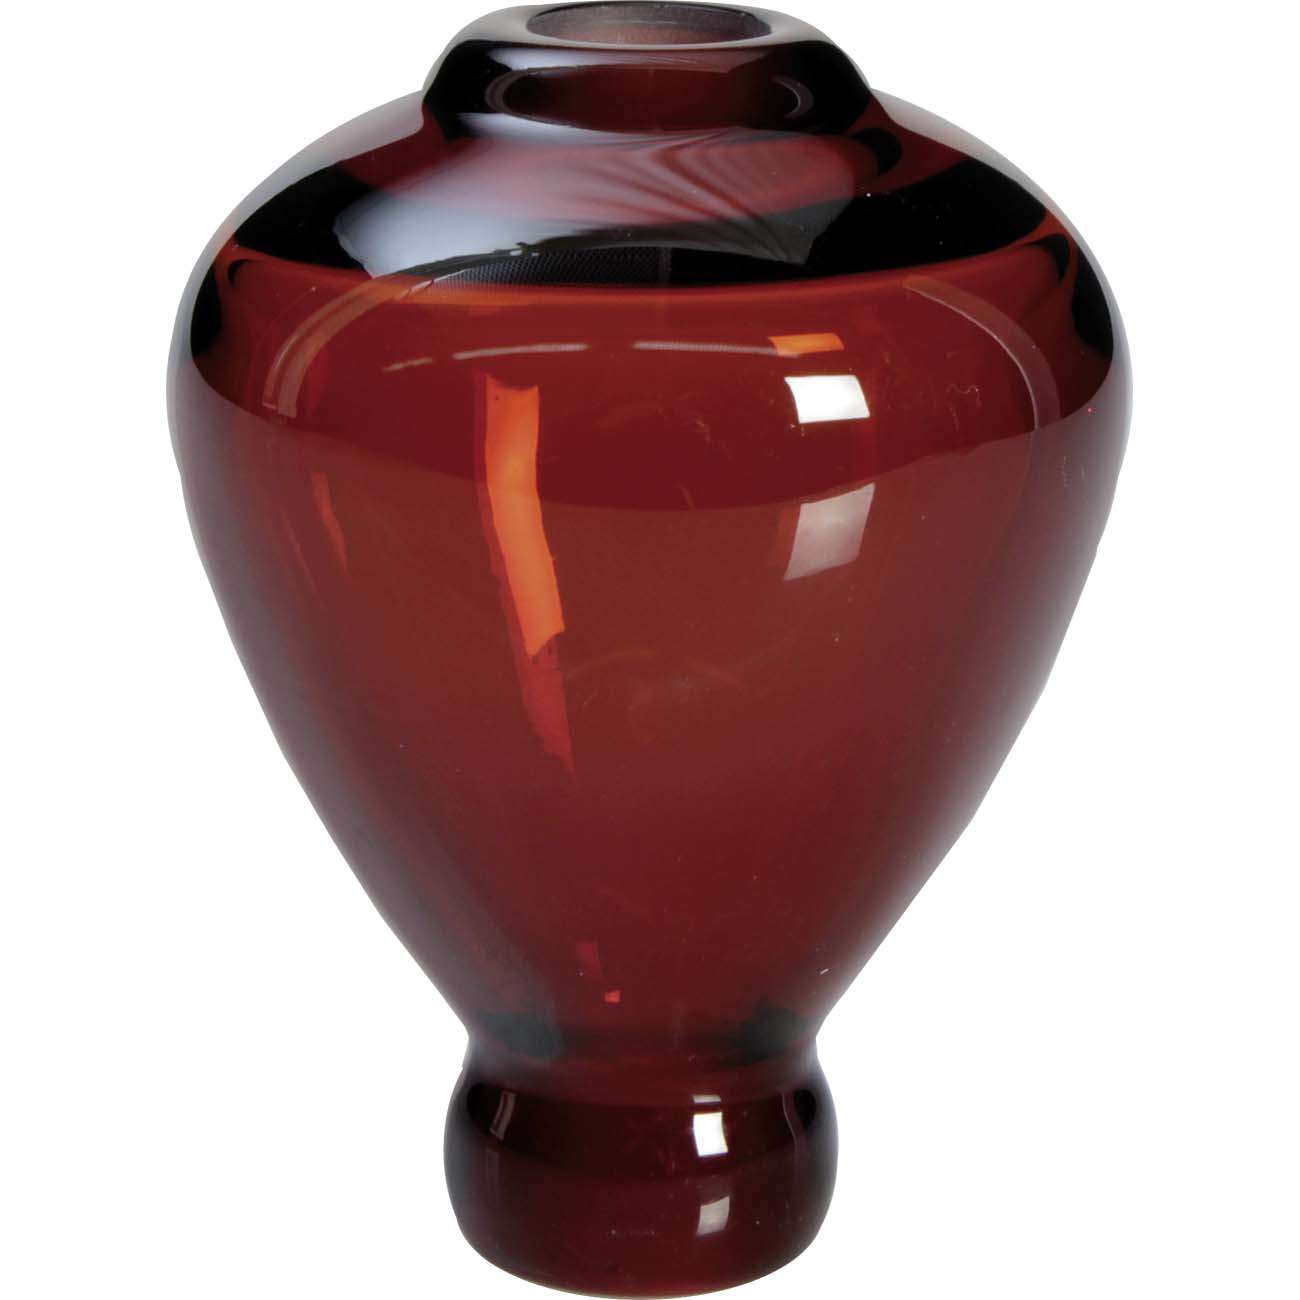 10 Cute Red Pottery Vase 2021 free download red pottery vase of hurricane basix bong condense chamber amber buying online hellip intended for hurricane basix bong condense chamber amber buying online black leaf shop black leaf